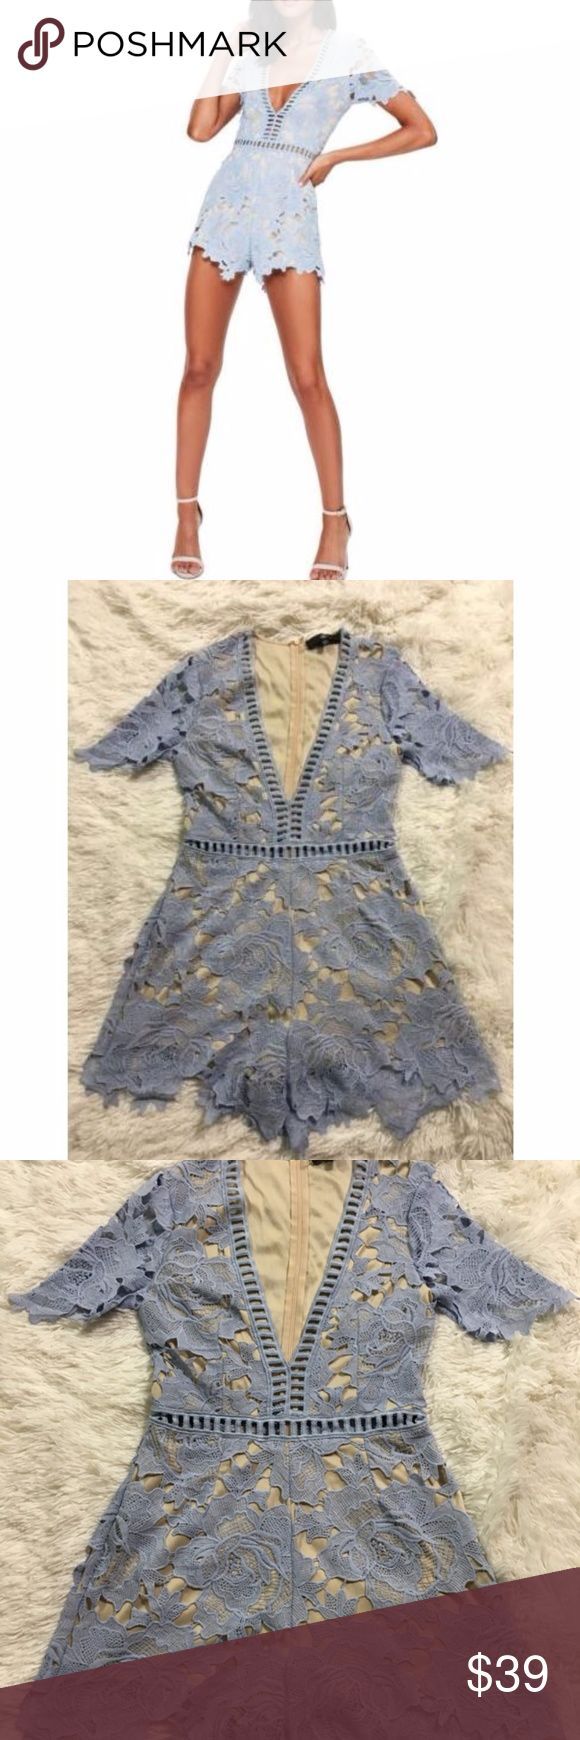 Missguided 6 Ladder Stitch Lace Romper Blue Croche Missguided 6 Ladder Stitch Lace Romper Blue Crochet Playsuit Deep V Shorts Set Total length 33 inches. Bust is 36 inches, unstretched Excellent condition Missguided Pants Jumpsuits & Rompers